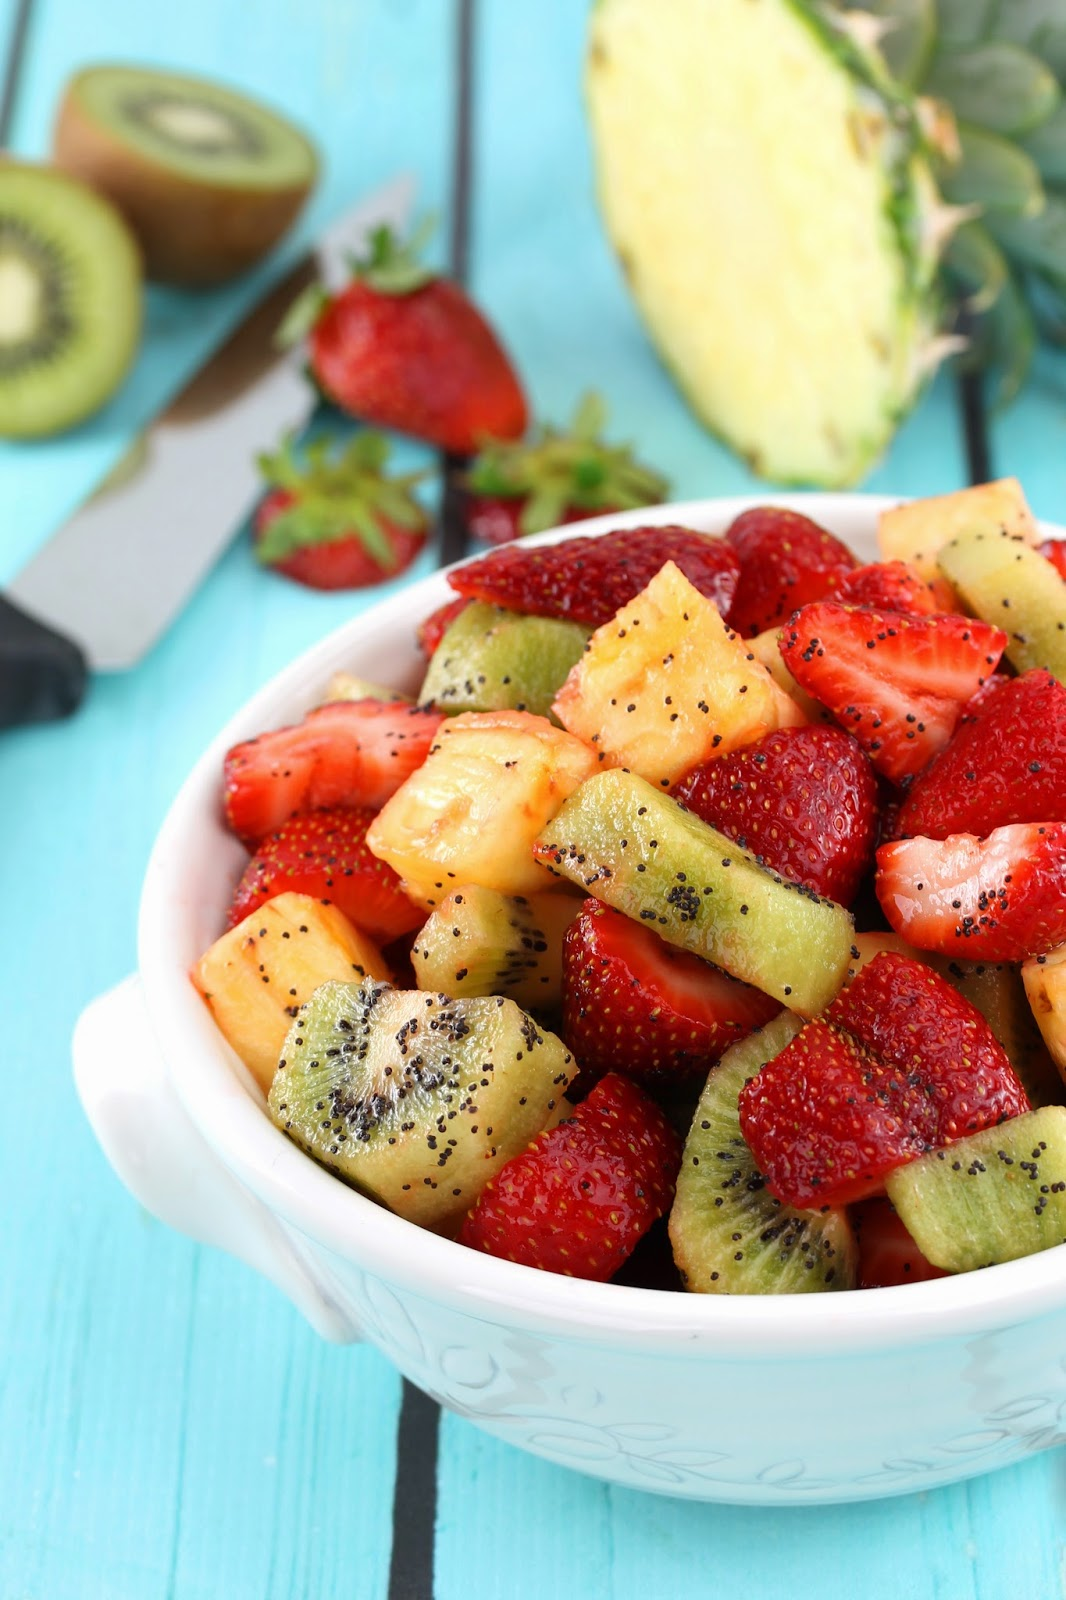 ... Stay At Home Chef: Triple Fruit Salad with Lemon-Poppy Seed Dressing